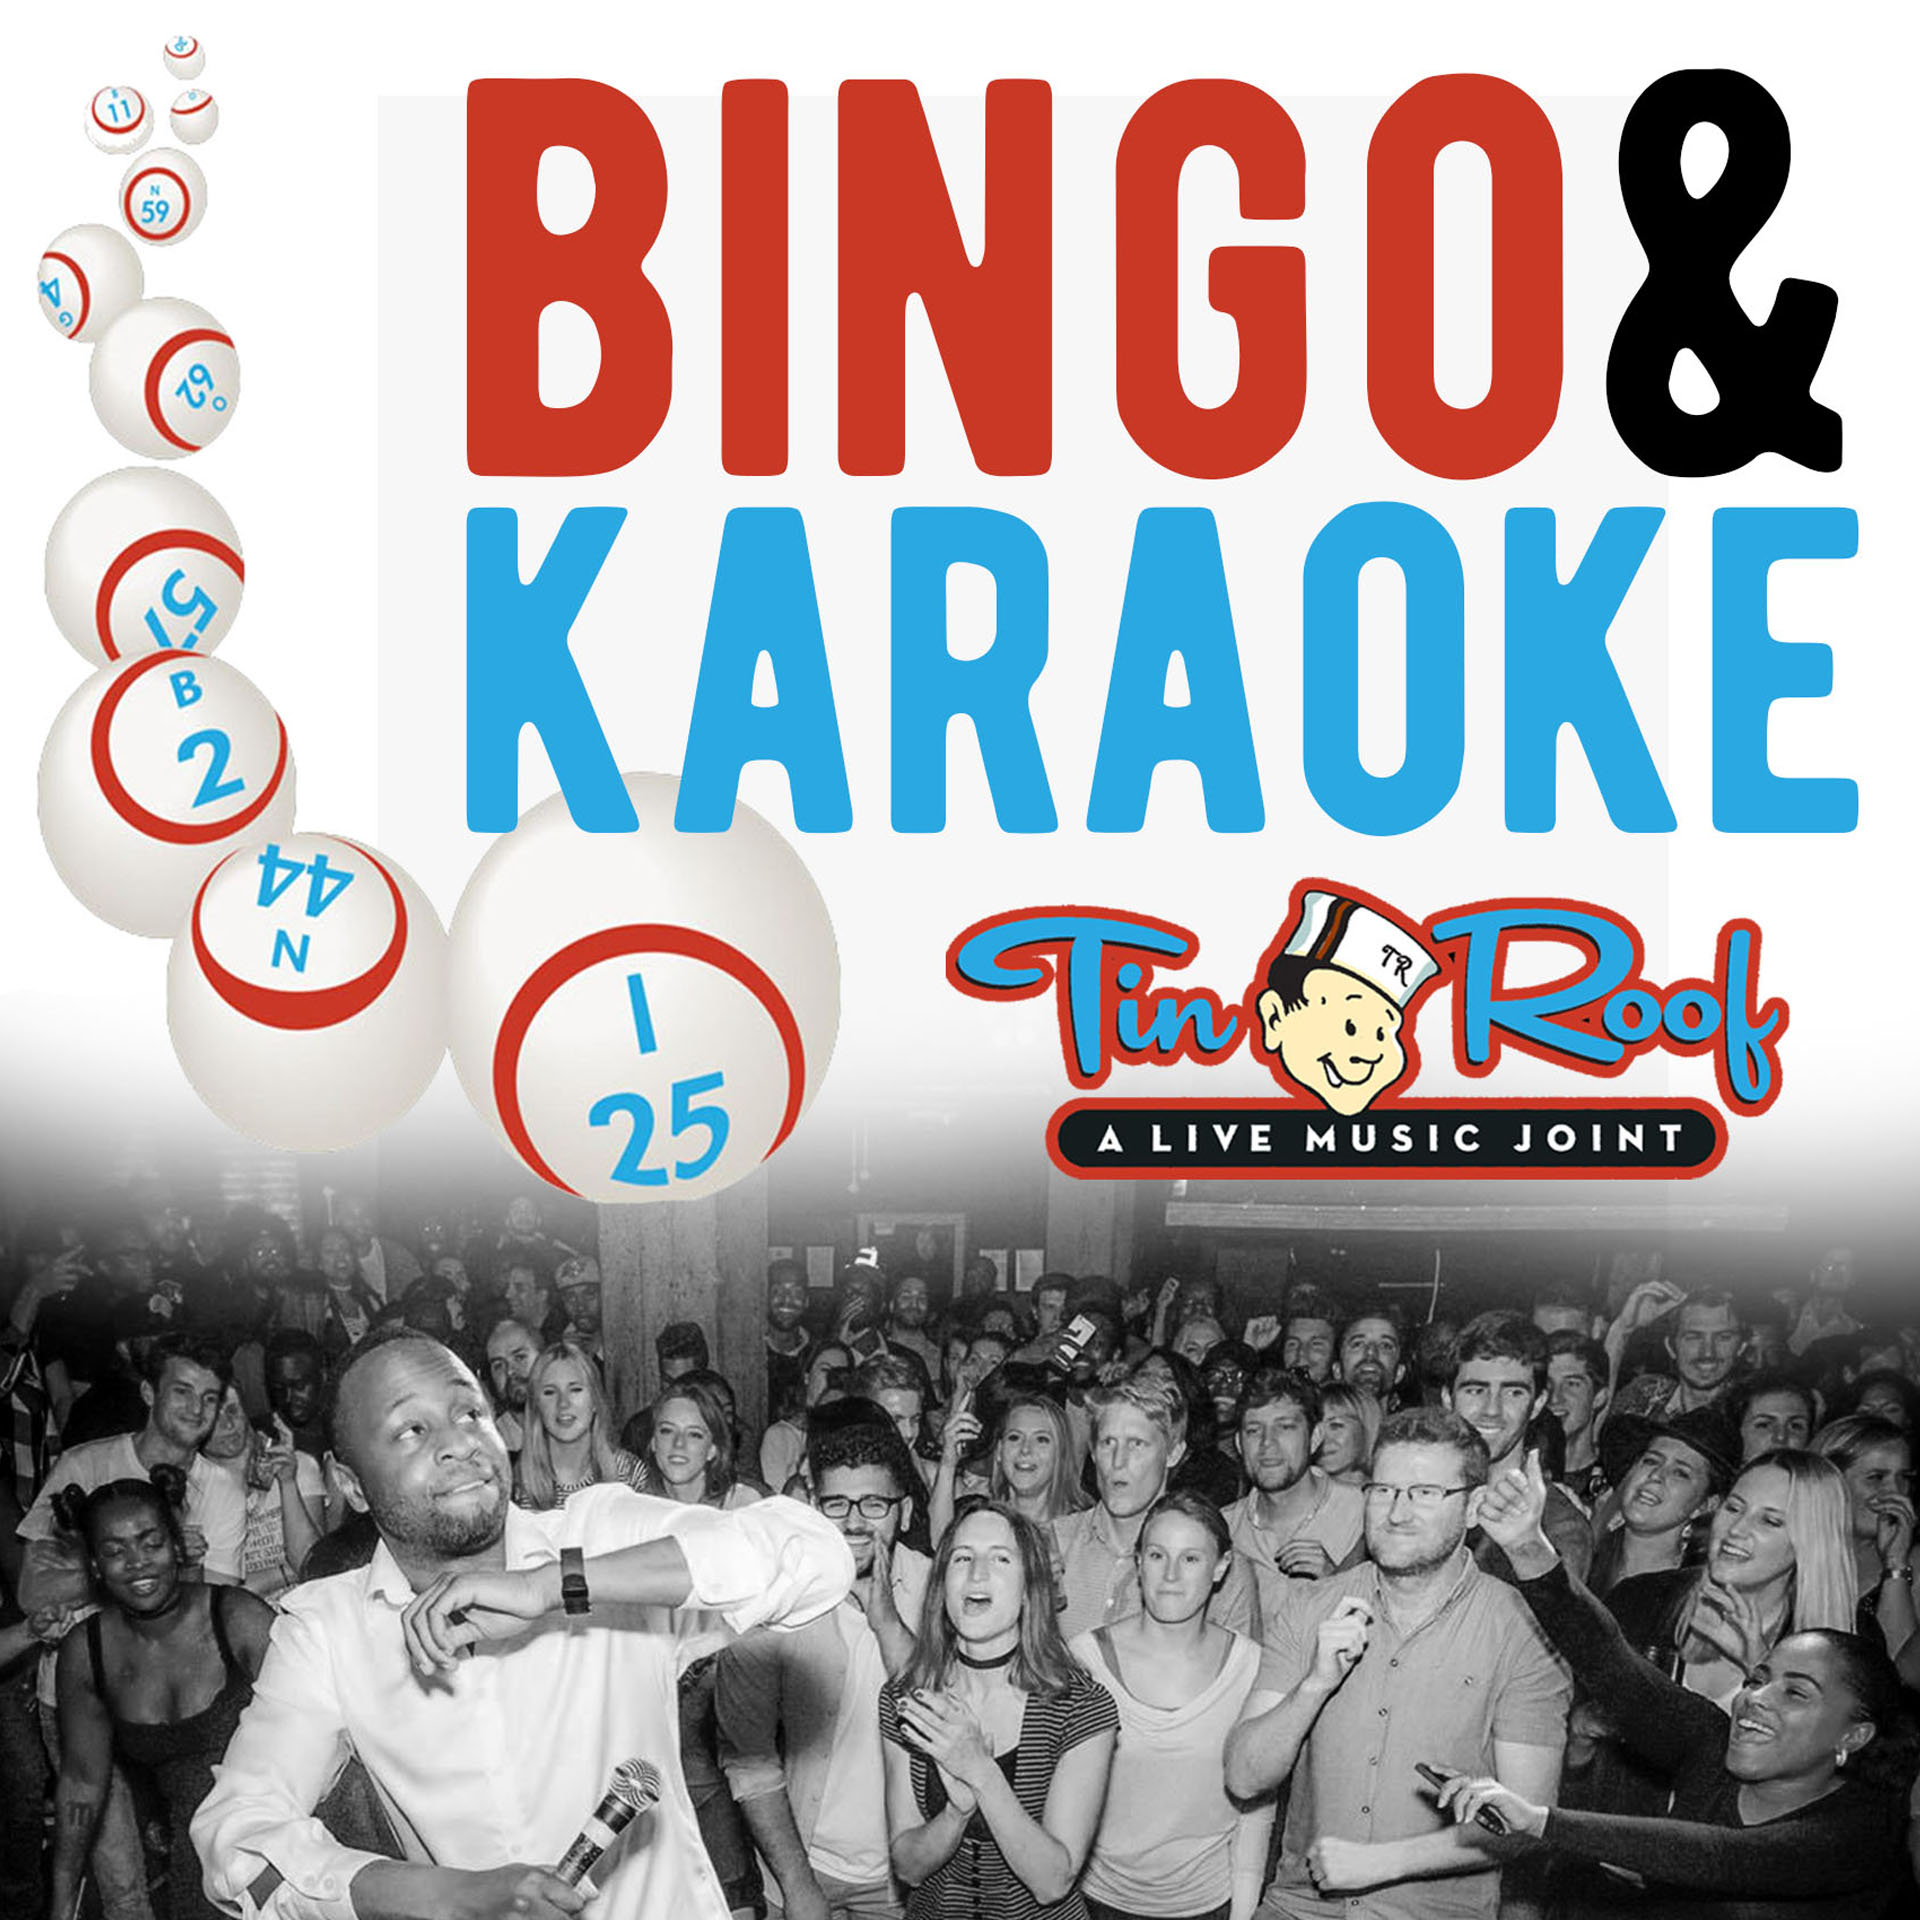 Bingo & Karaoke Every Wednesday Night